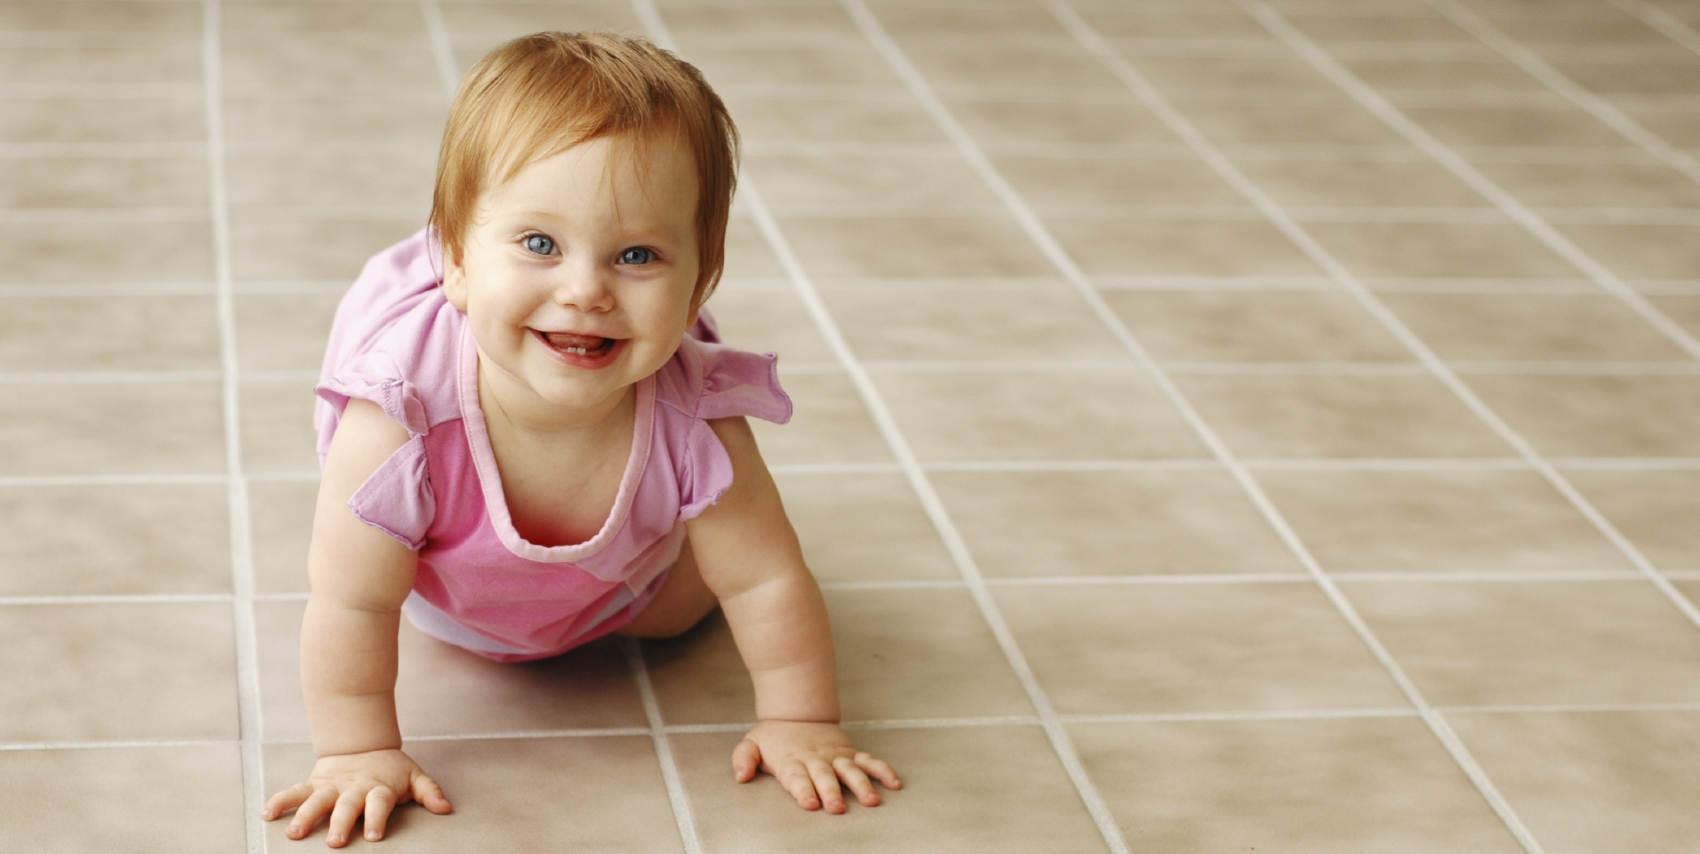 Baby on Clean Tile